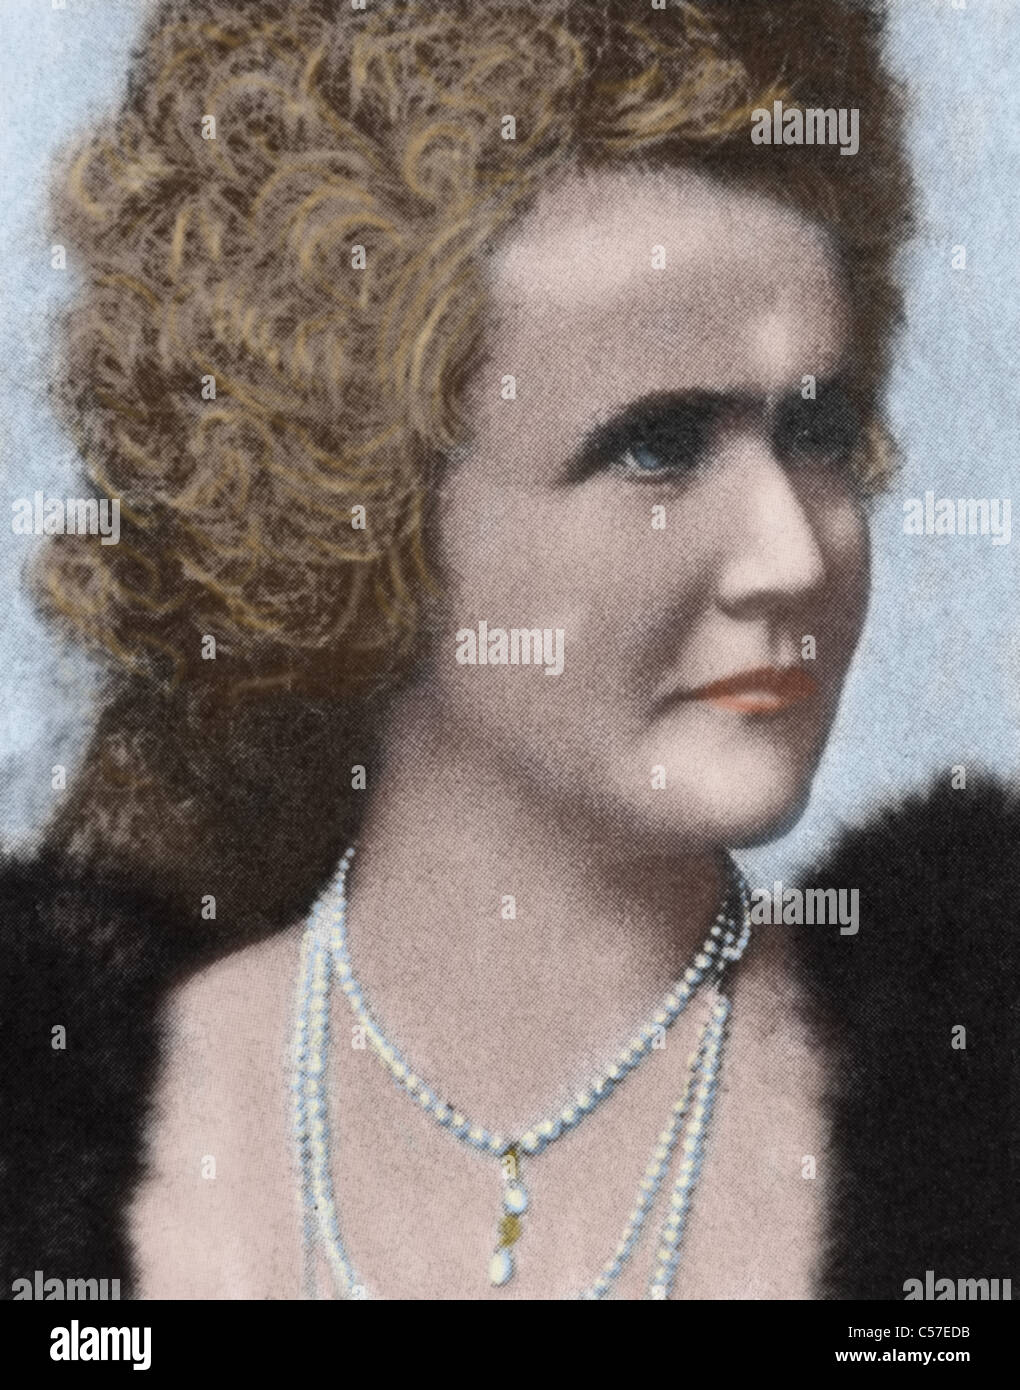 Elisabeth of Wied (1843-1916). Queen consort of Romania as the wife of King Carol I of Romania. - Stock Image